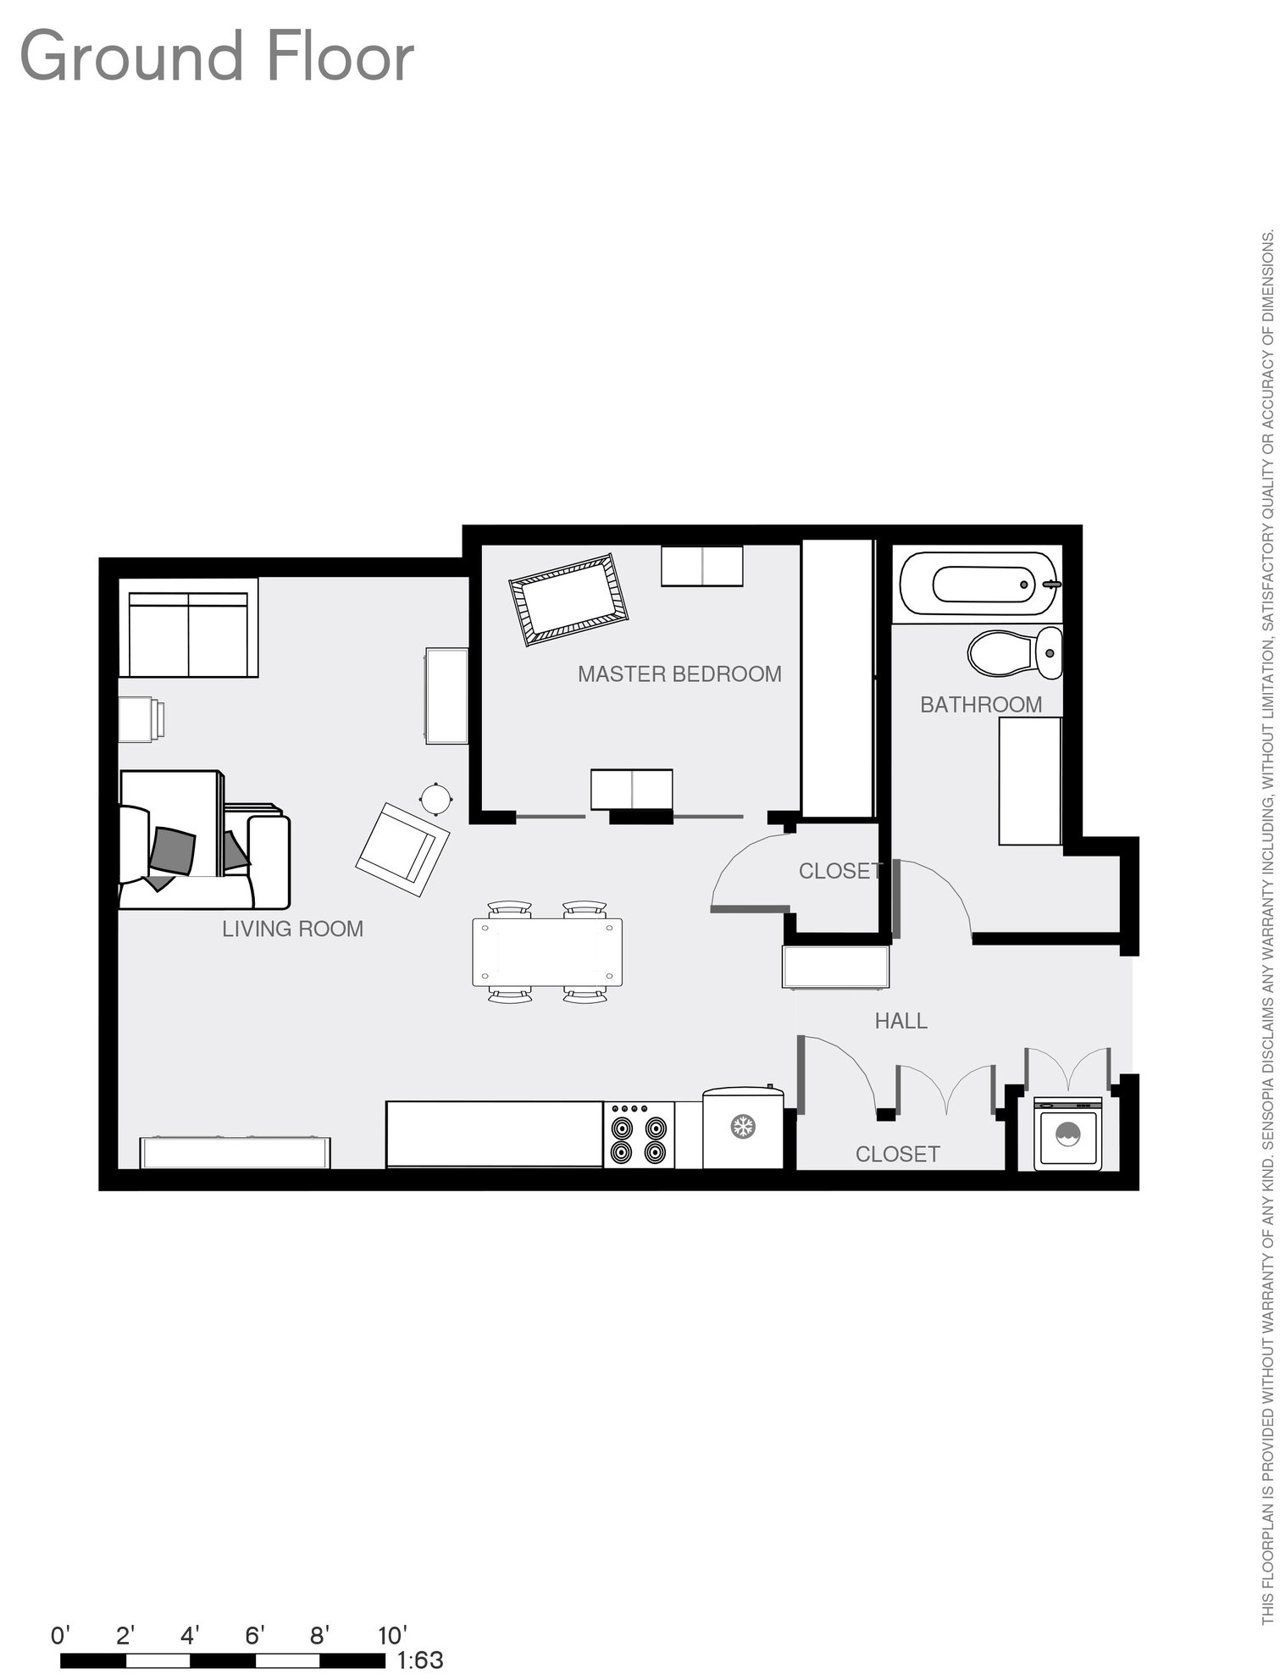 Studio Apartment With Baby alison, trevor and a baby in 600 square feet - nice 1-bedroom